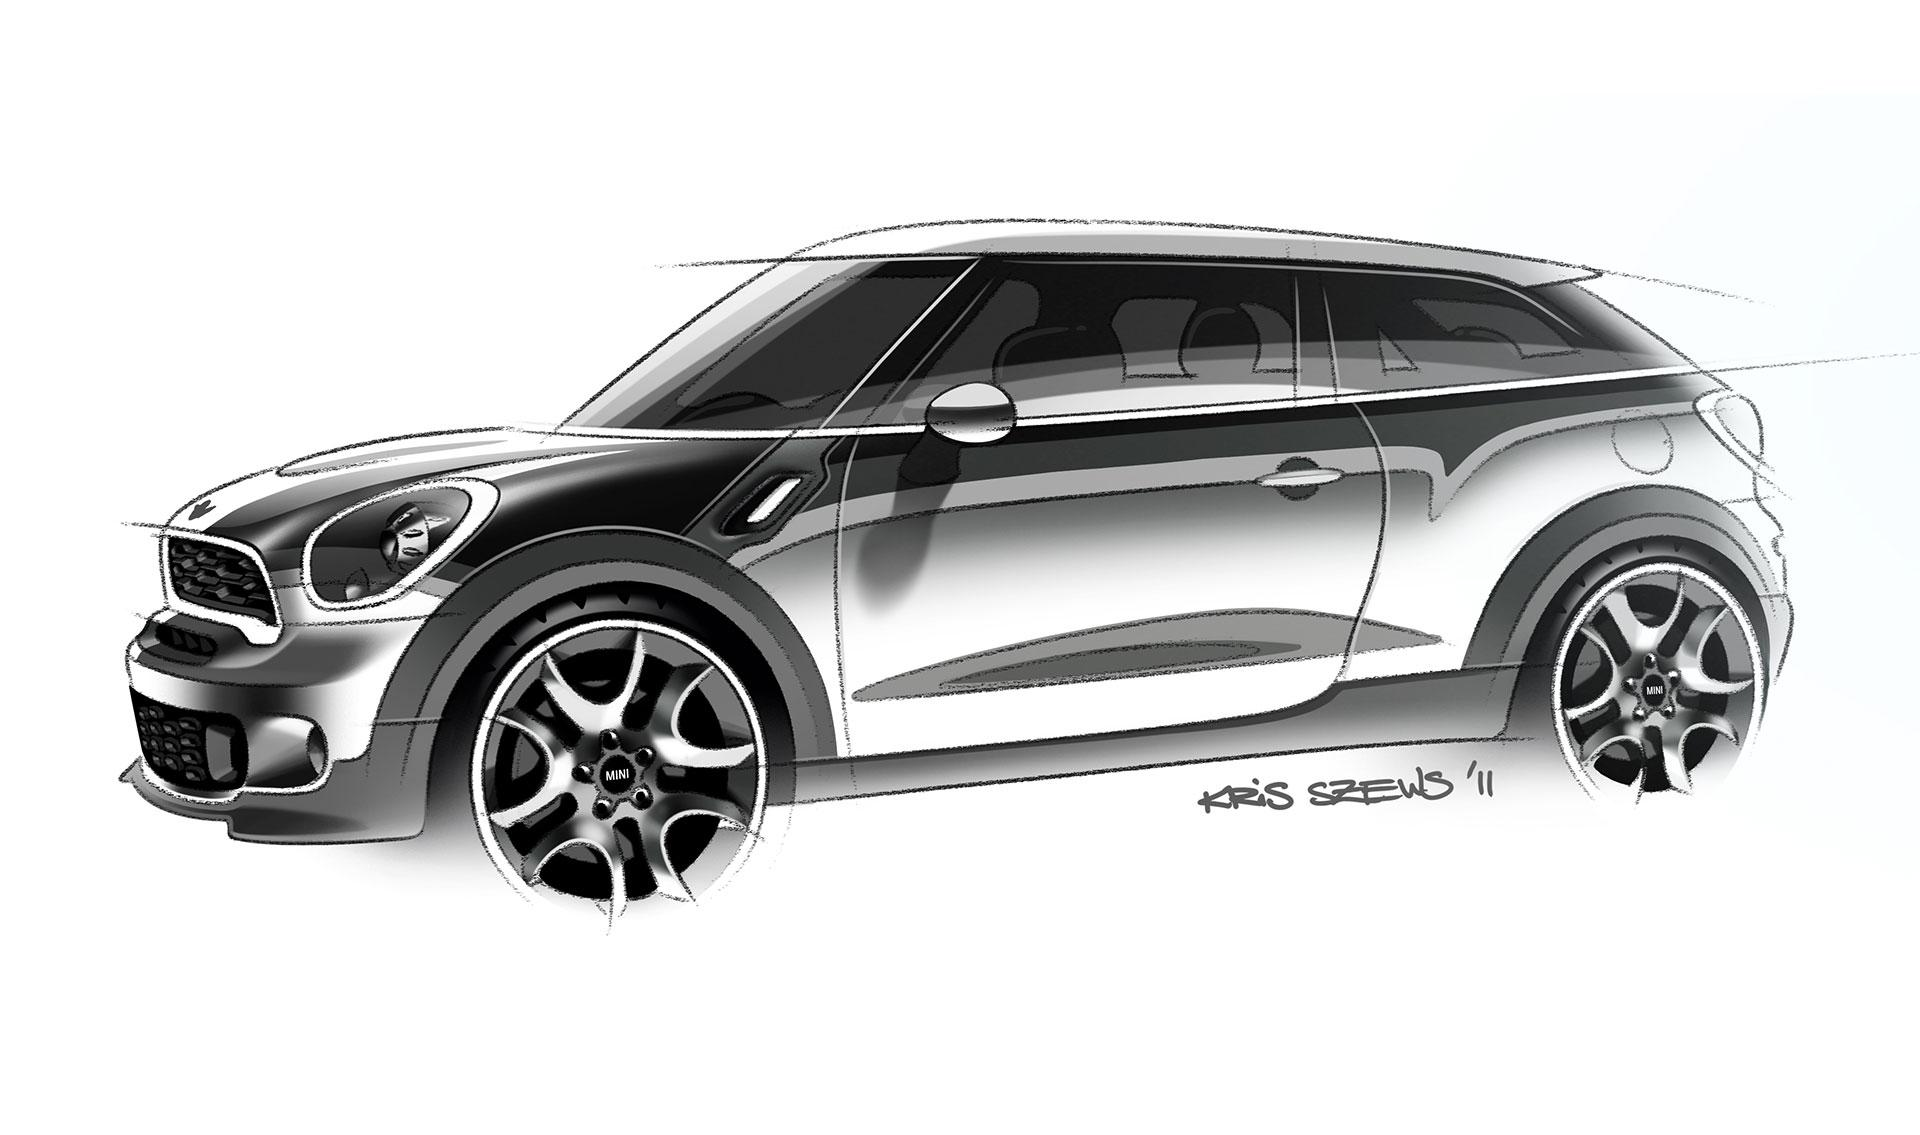 MINI Paceman Design Sketch - Car Body Design